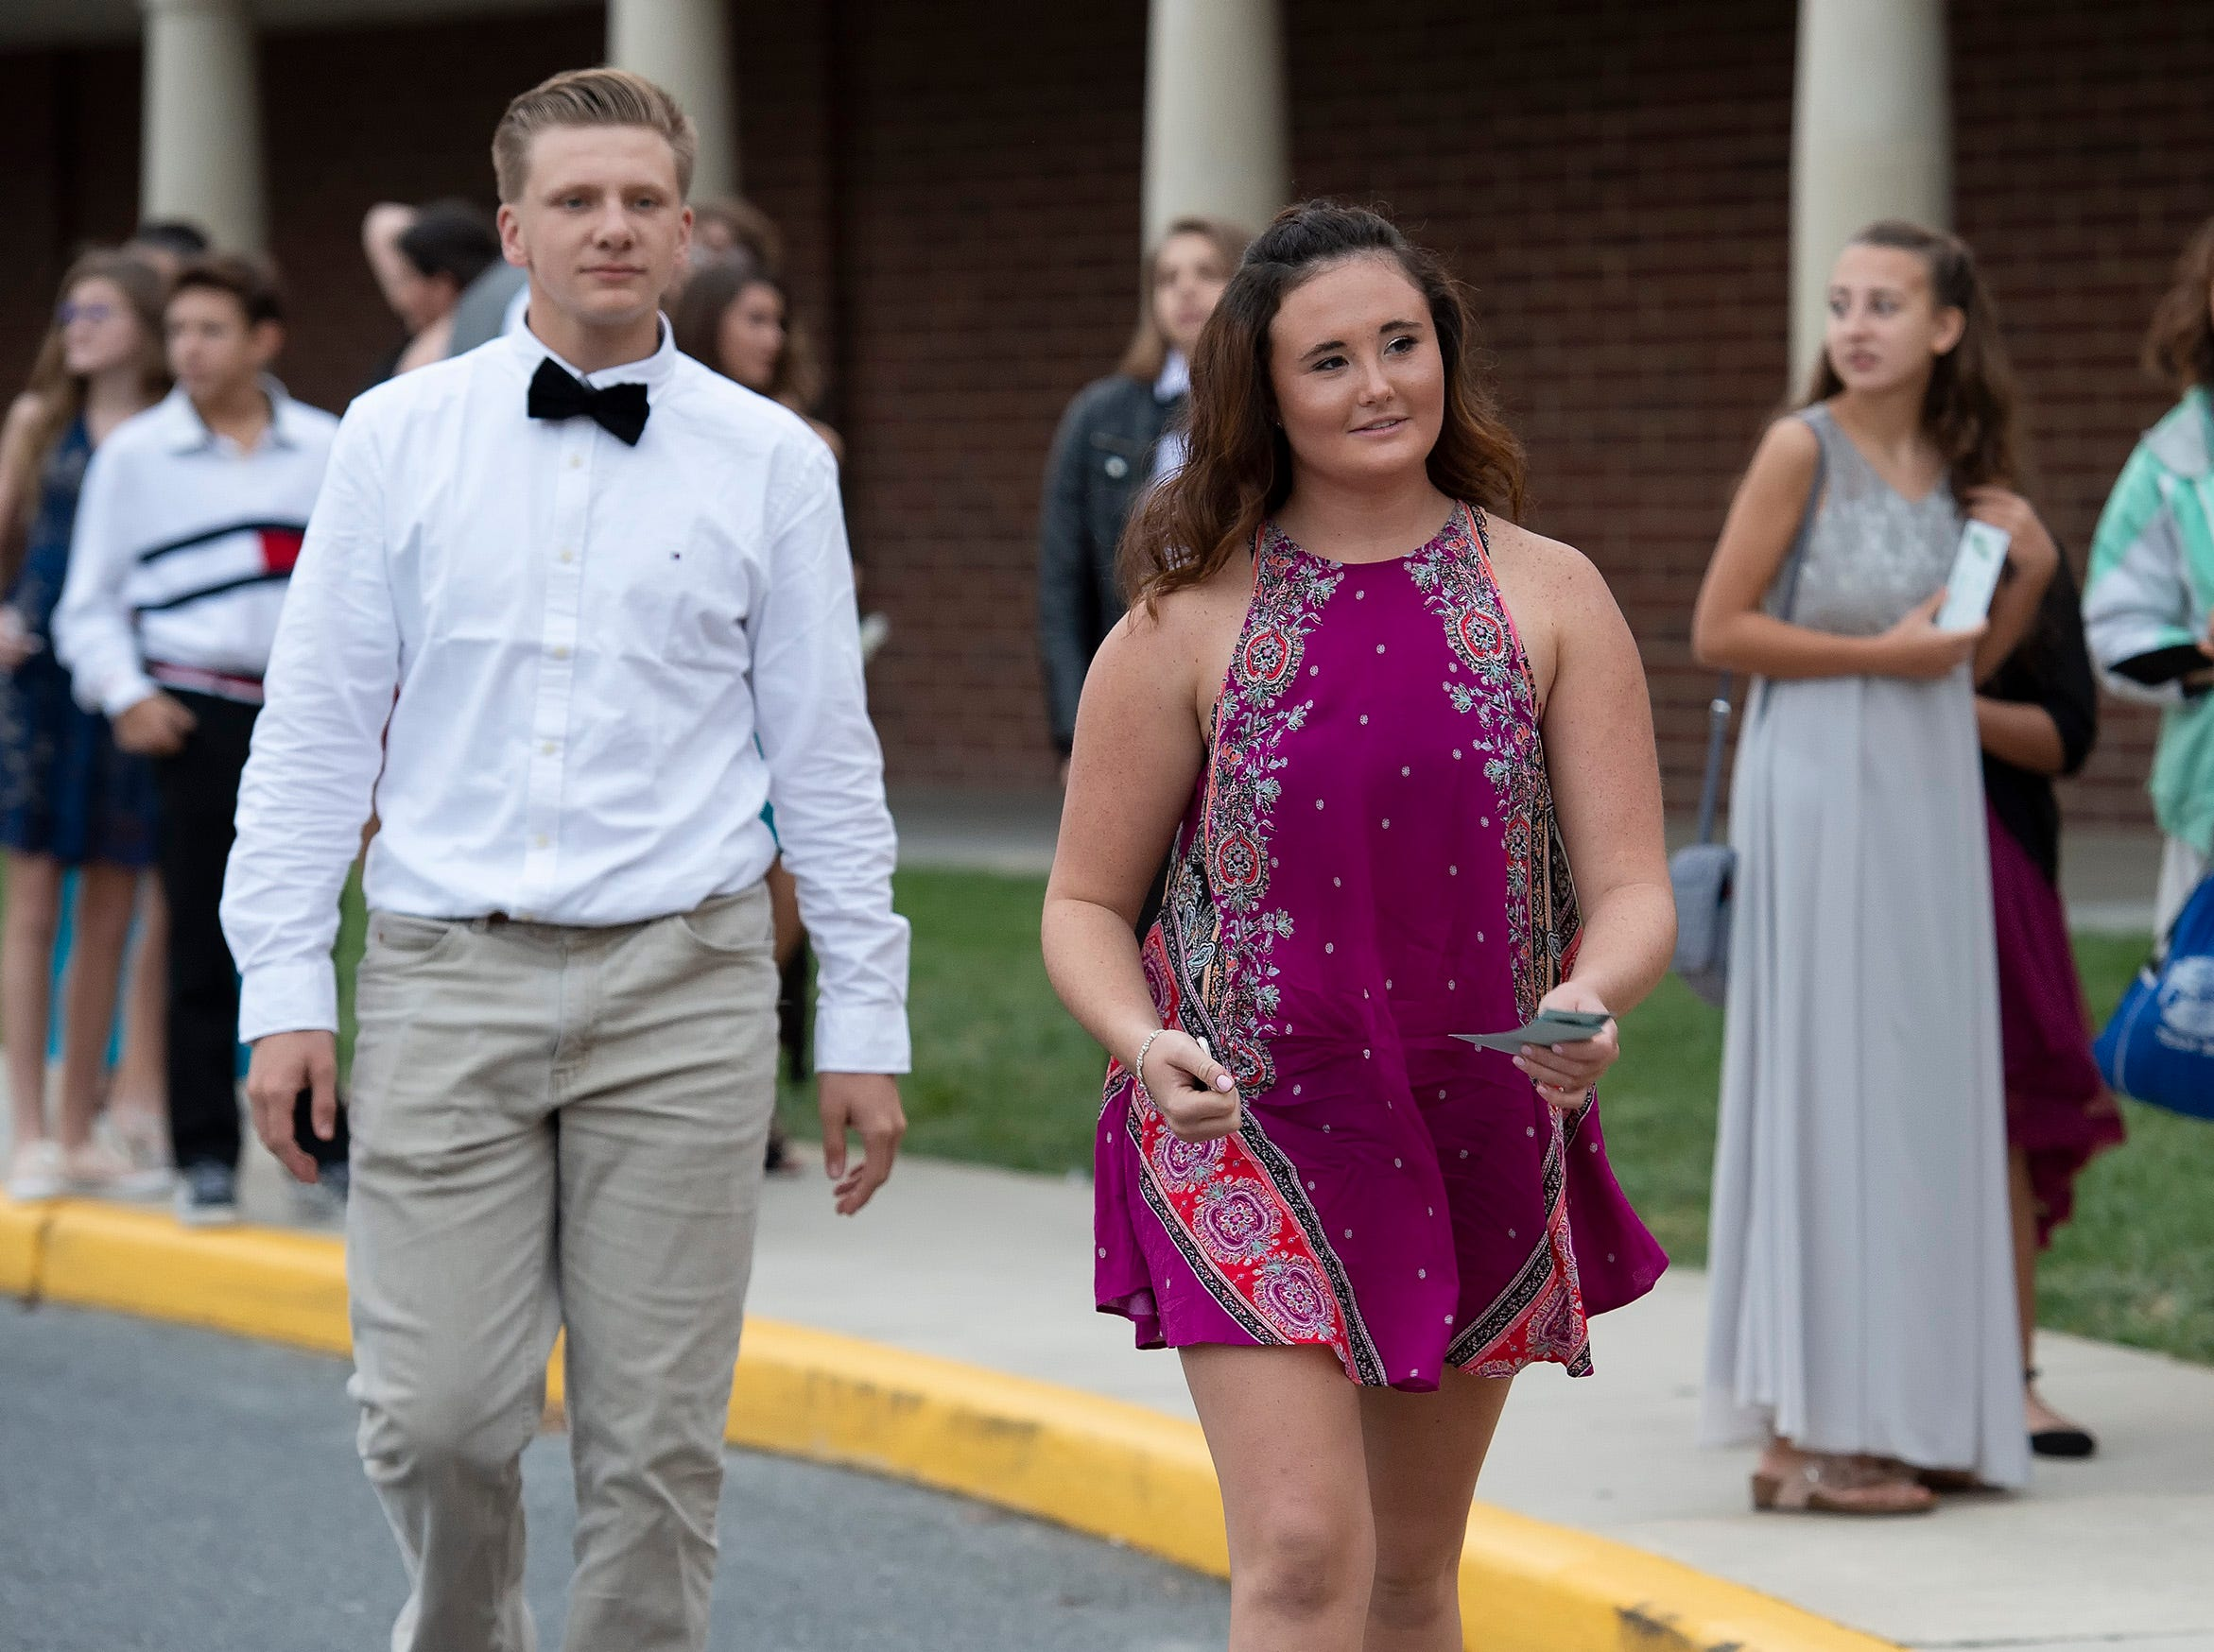 Students and their guests attend the Cape Henlopen High School homecoming dance Saturday, Oct 20, 2018 at Cape Henlopen High School.